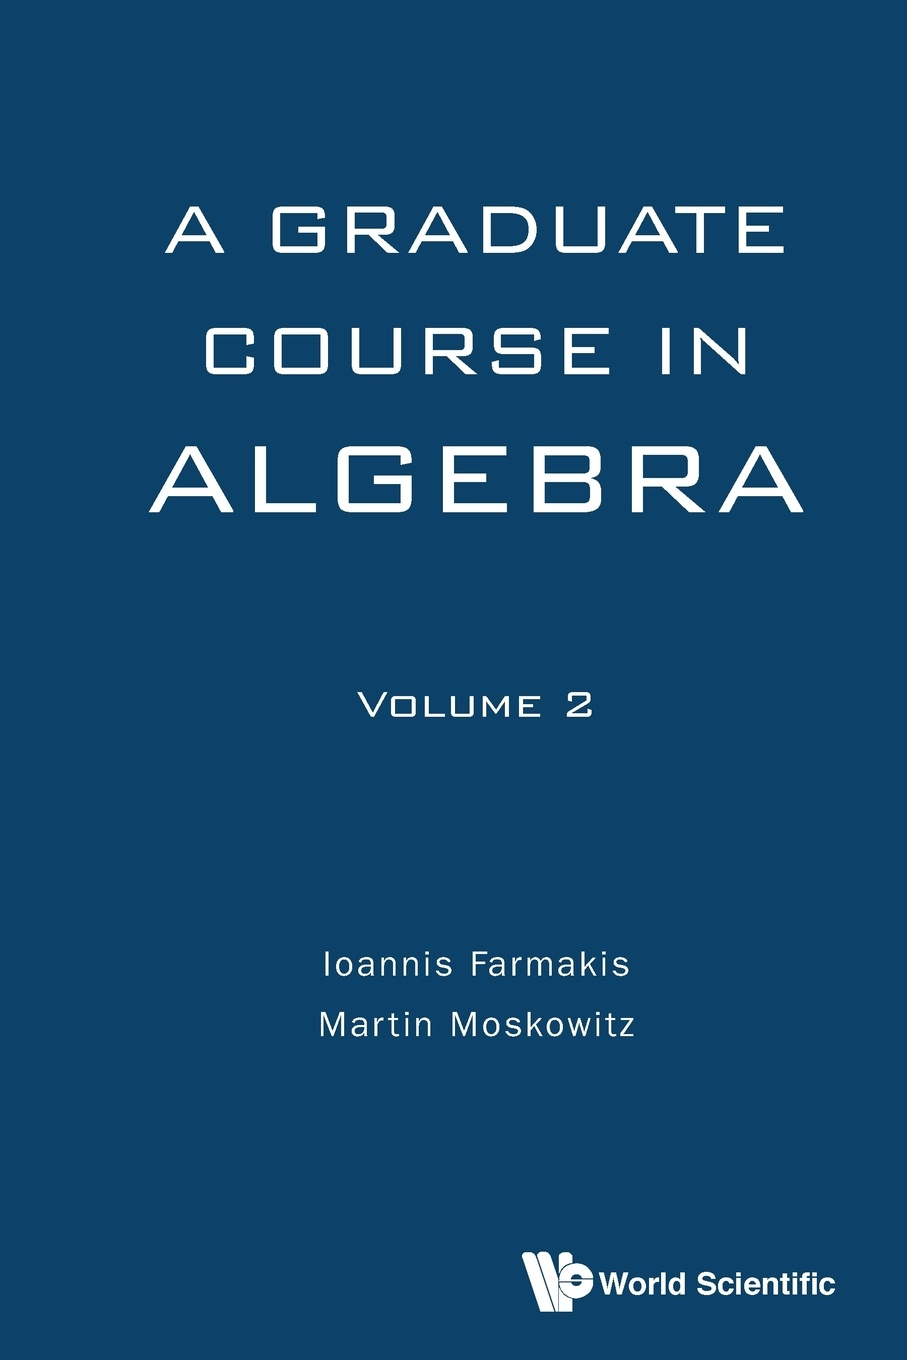 Ioannis Farmakis, Martin Moskowitz A Graduate Course in Algebra - Volume 2 v a goldich b g ziv algebra didactic materials for the 7th grade